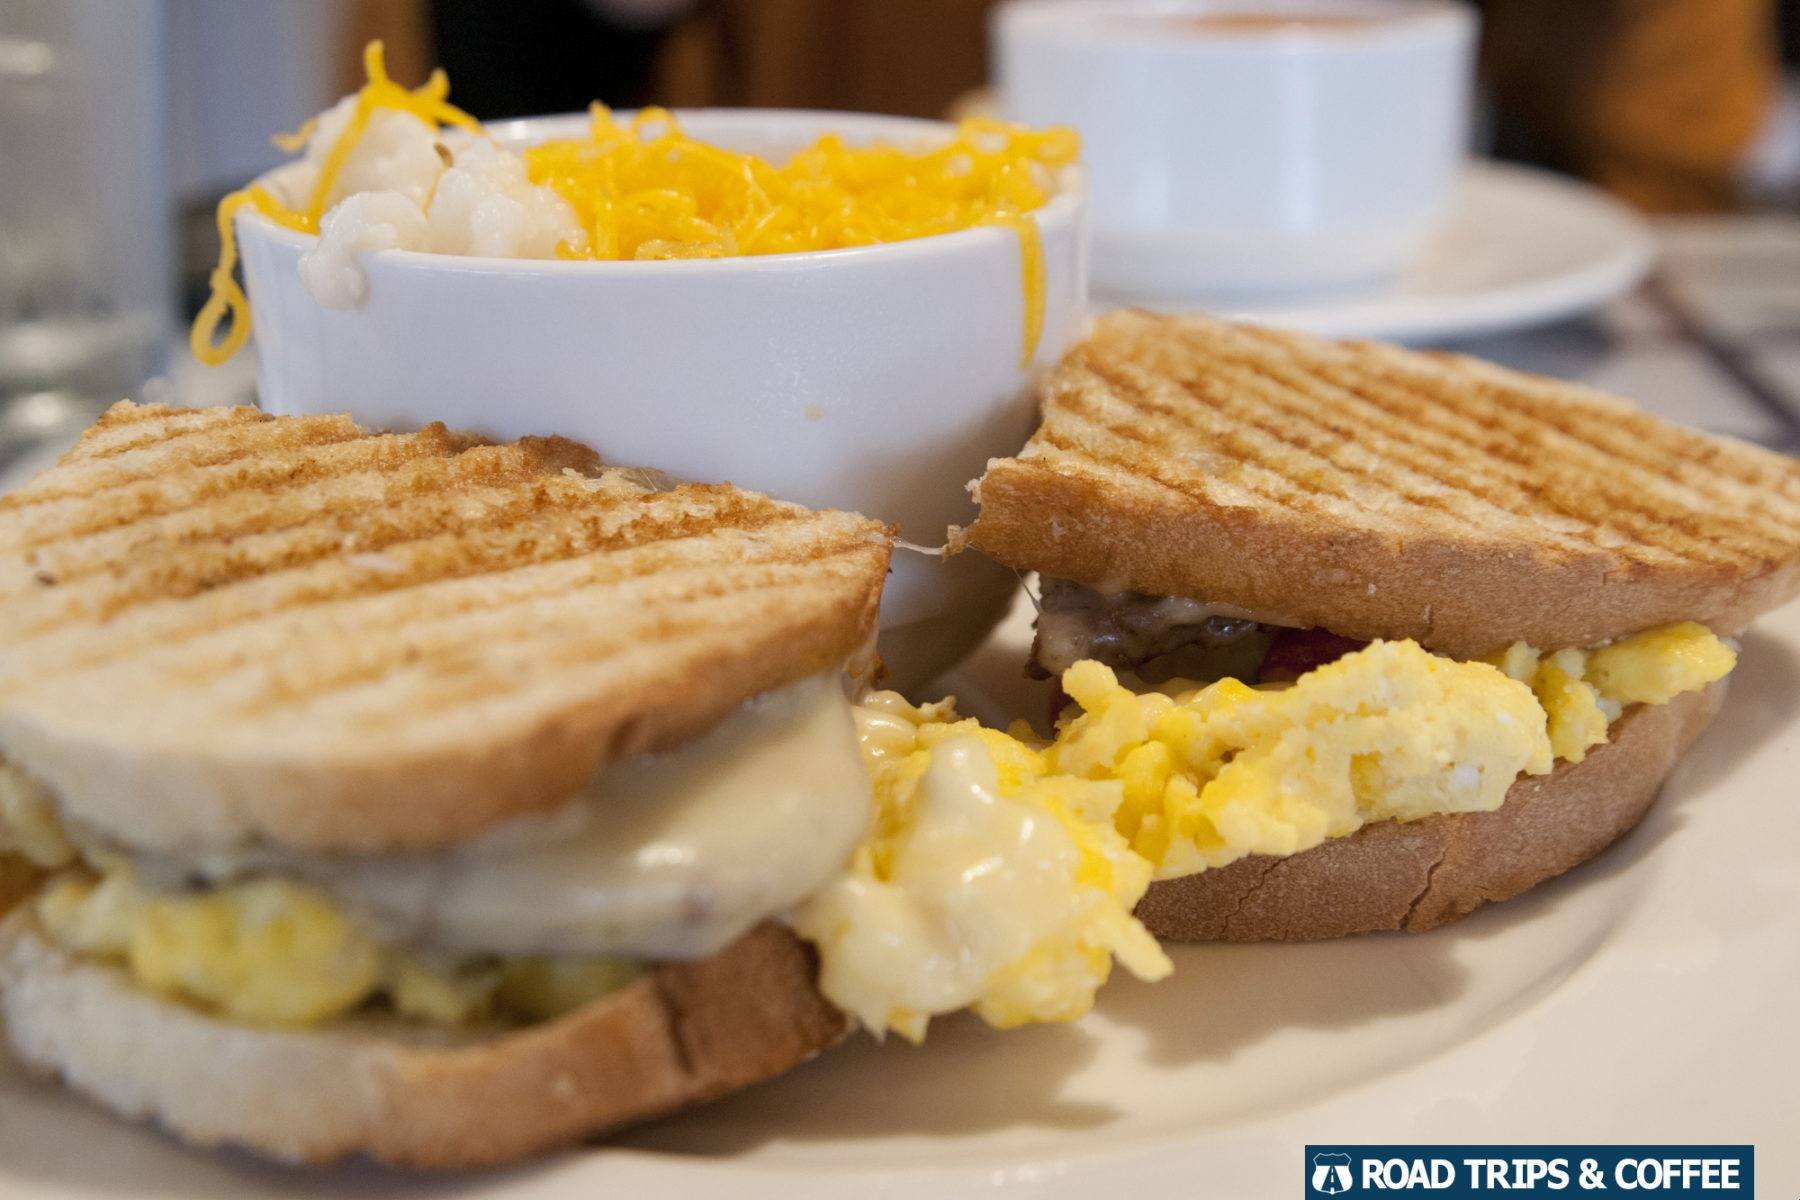 A bowl of cheese grits and two halves of a breakfast sandwich at The Gourmet Shop during brunch in Columbia, SC